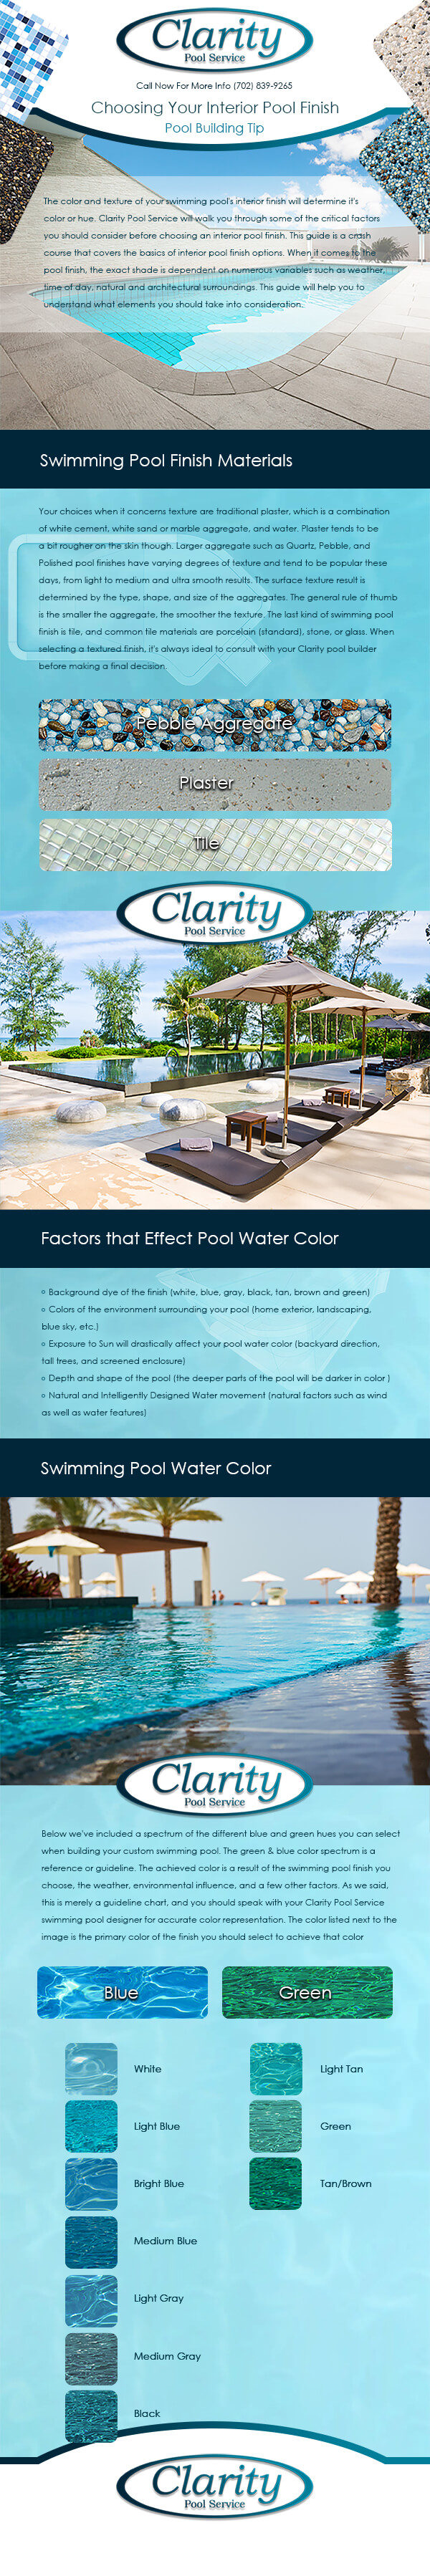 Clarity Pool Service Swimming Pool Finishing Material Infographic